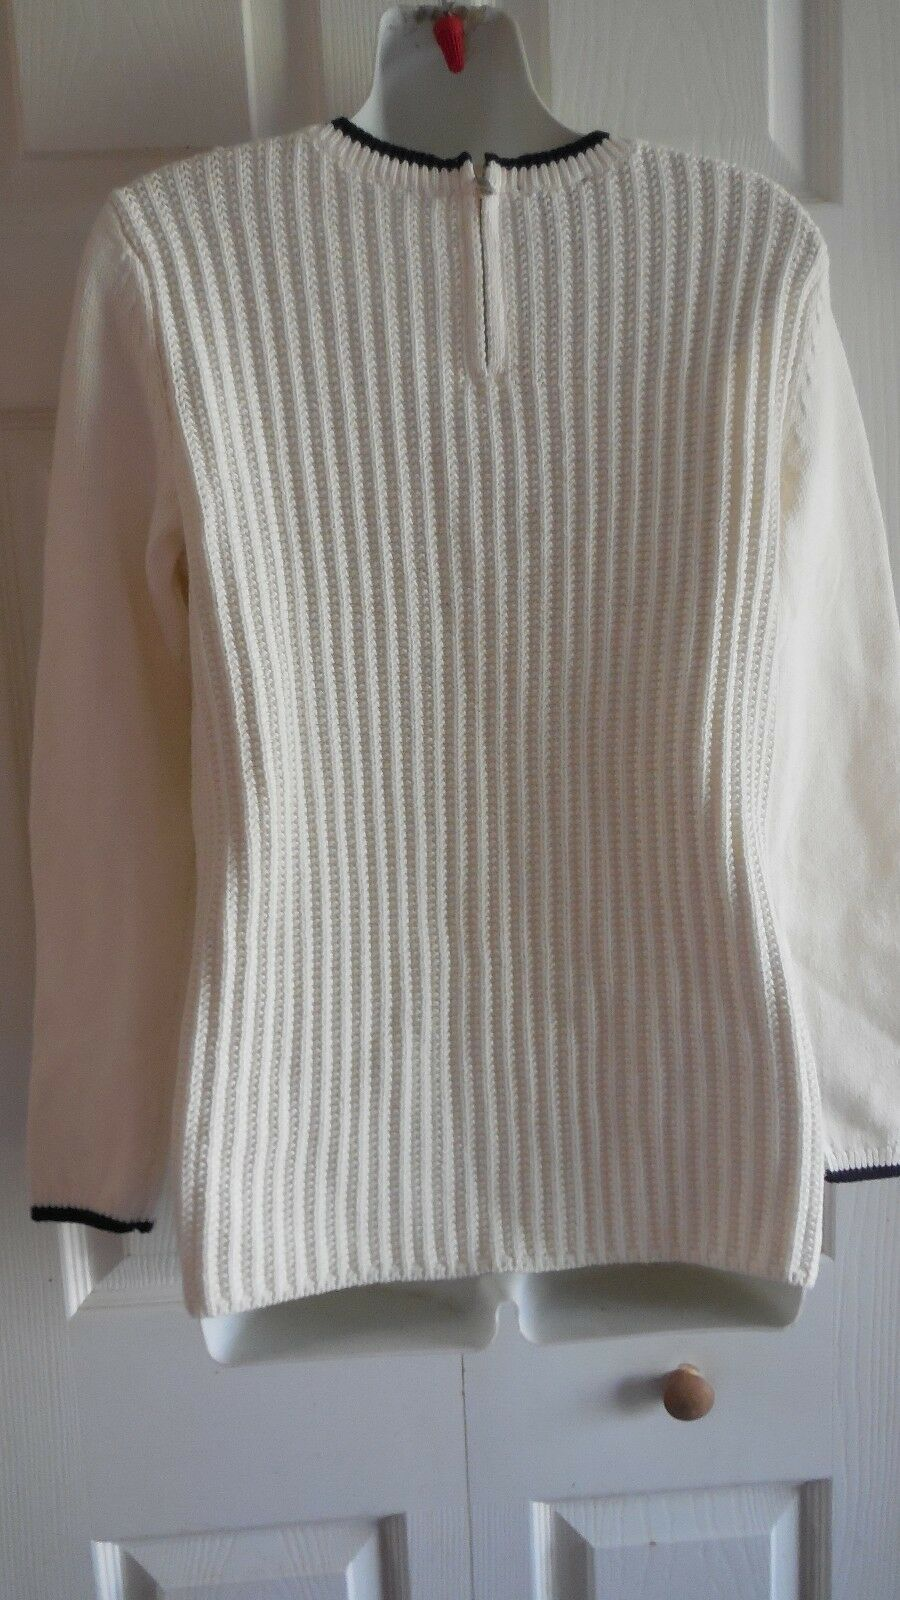 NWT  89.50 89.50 89.50 TALBOTS  100% COTTON KNIT  SWEATER  PM 74c46a